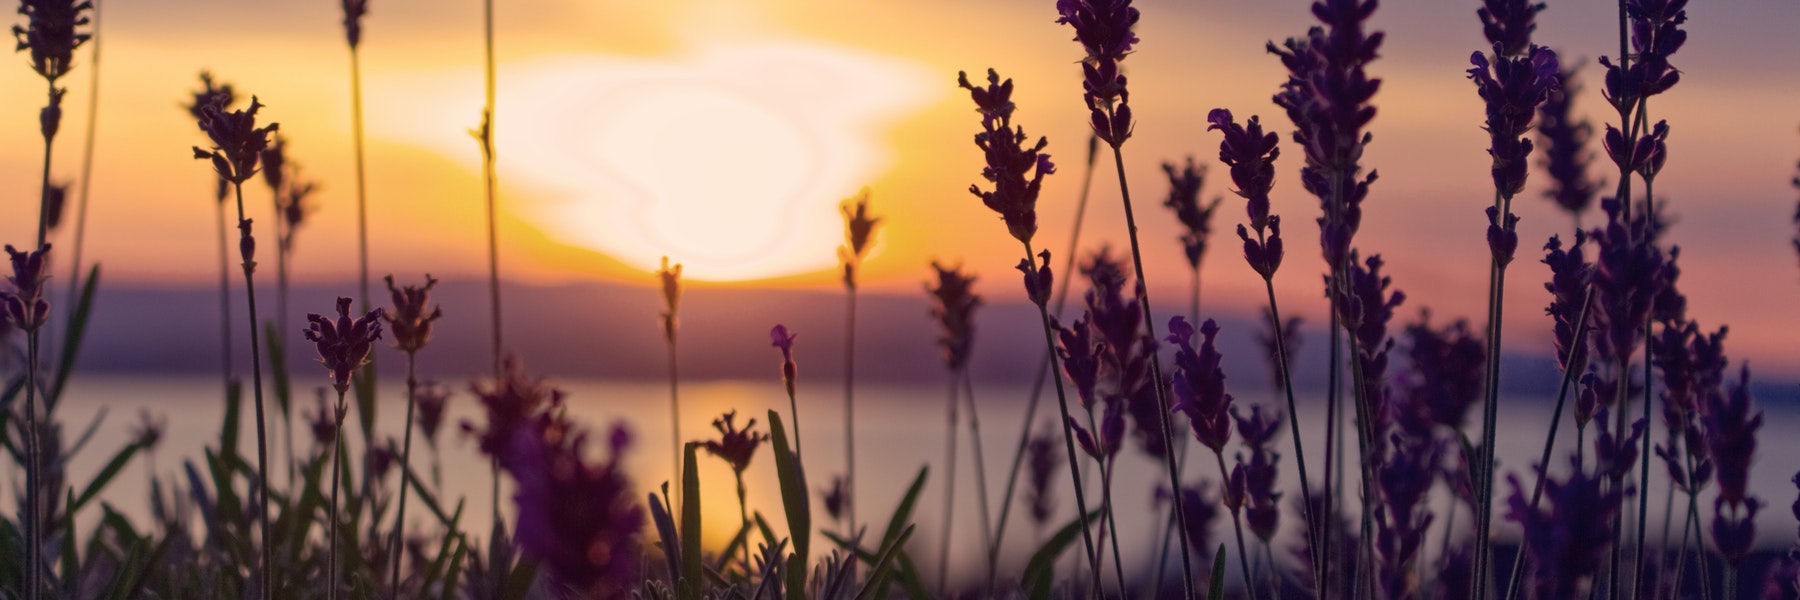 A field of flowers at sunset